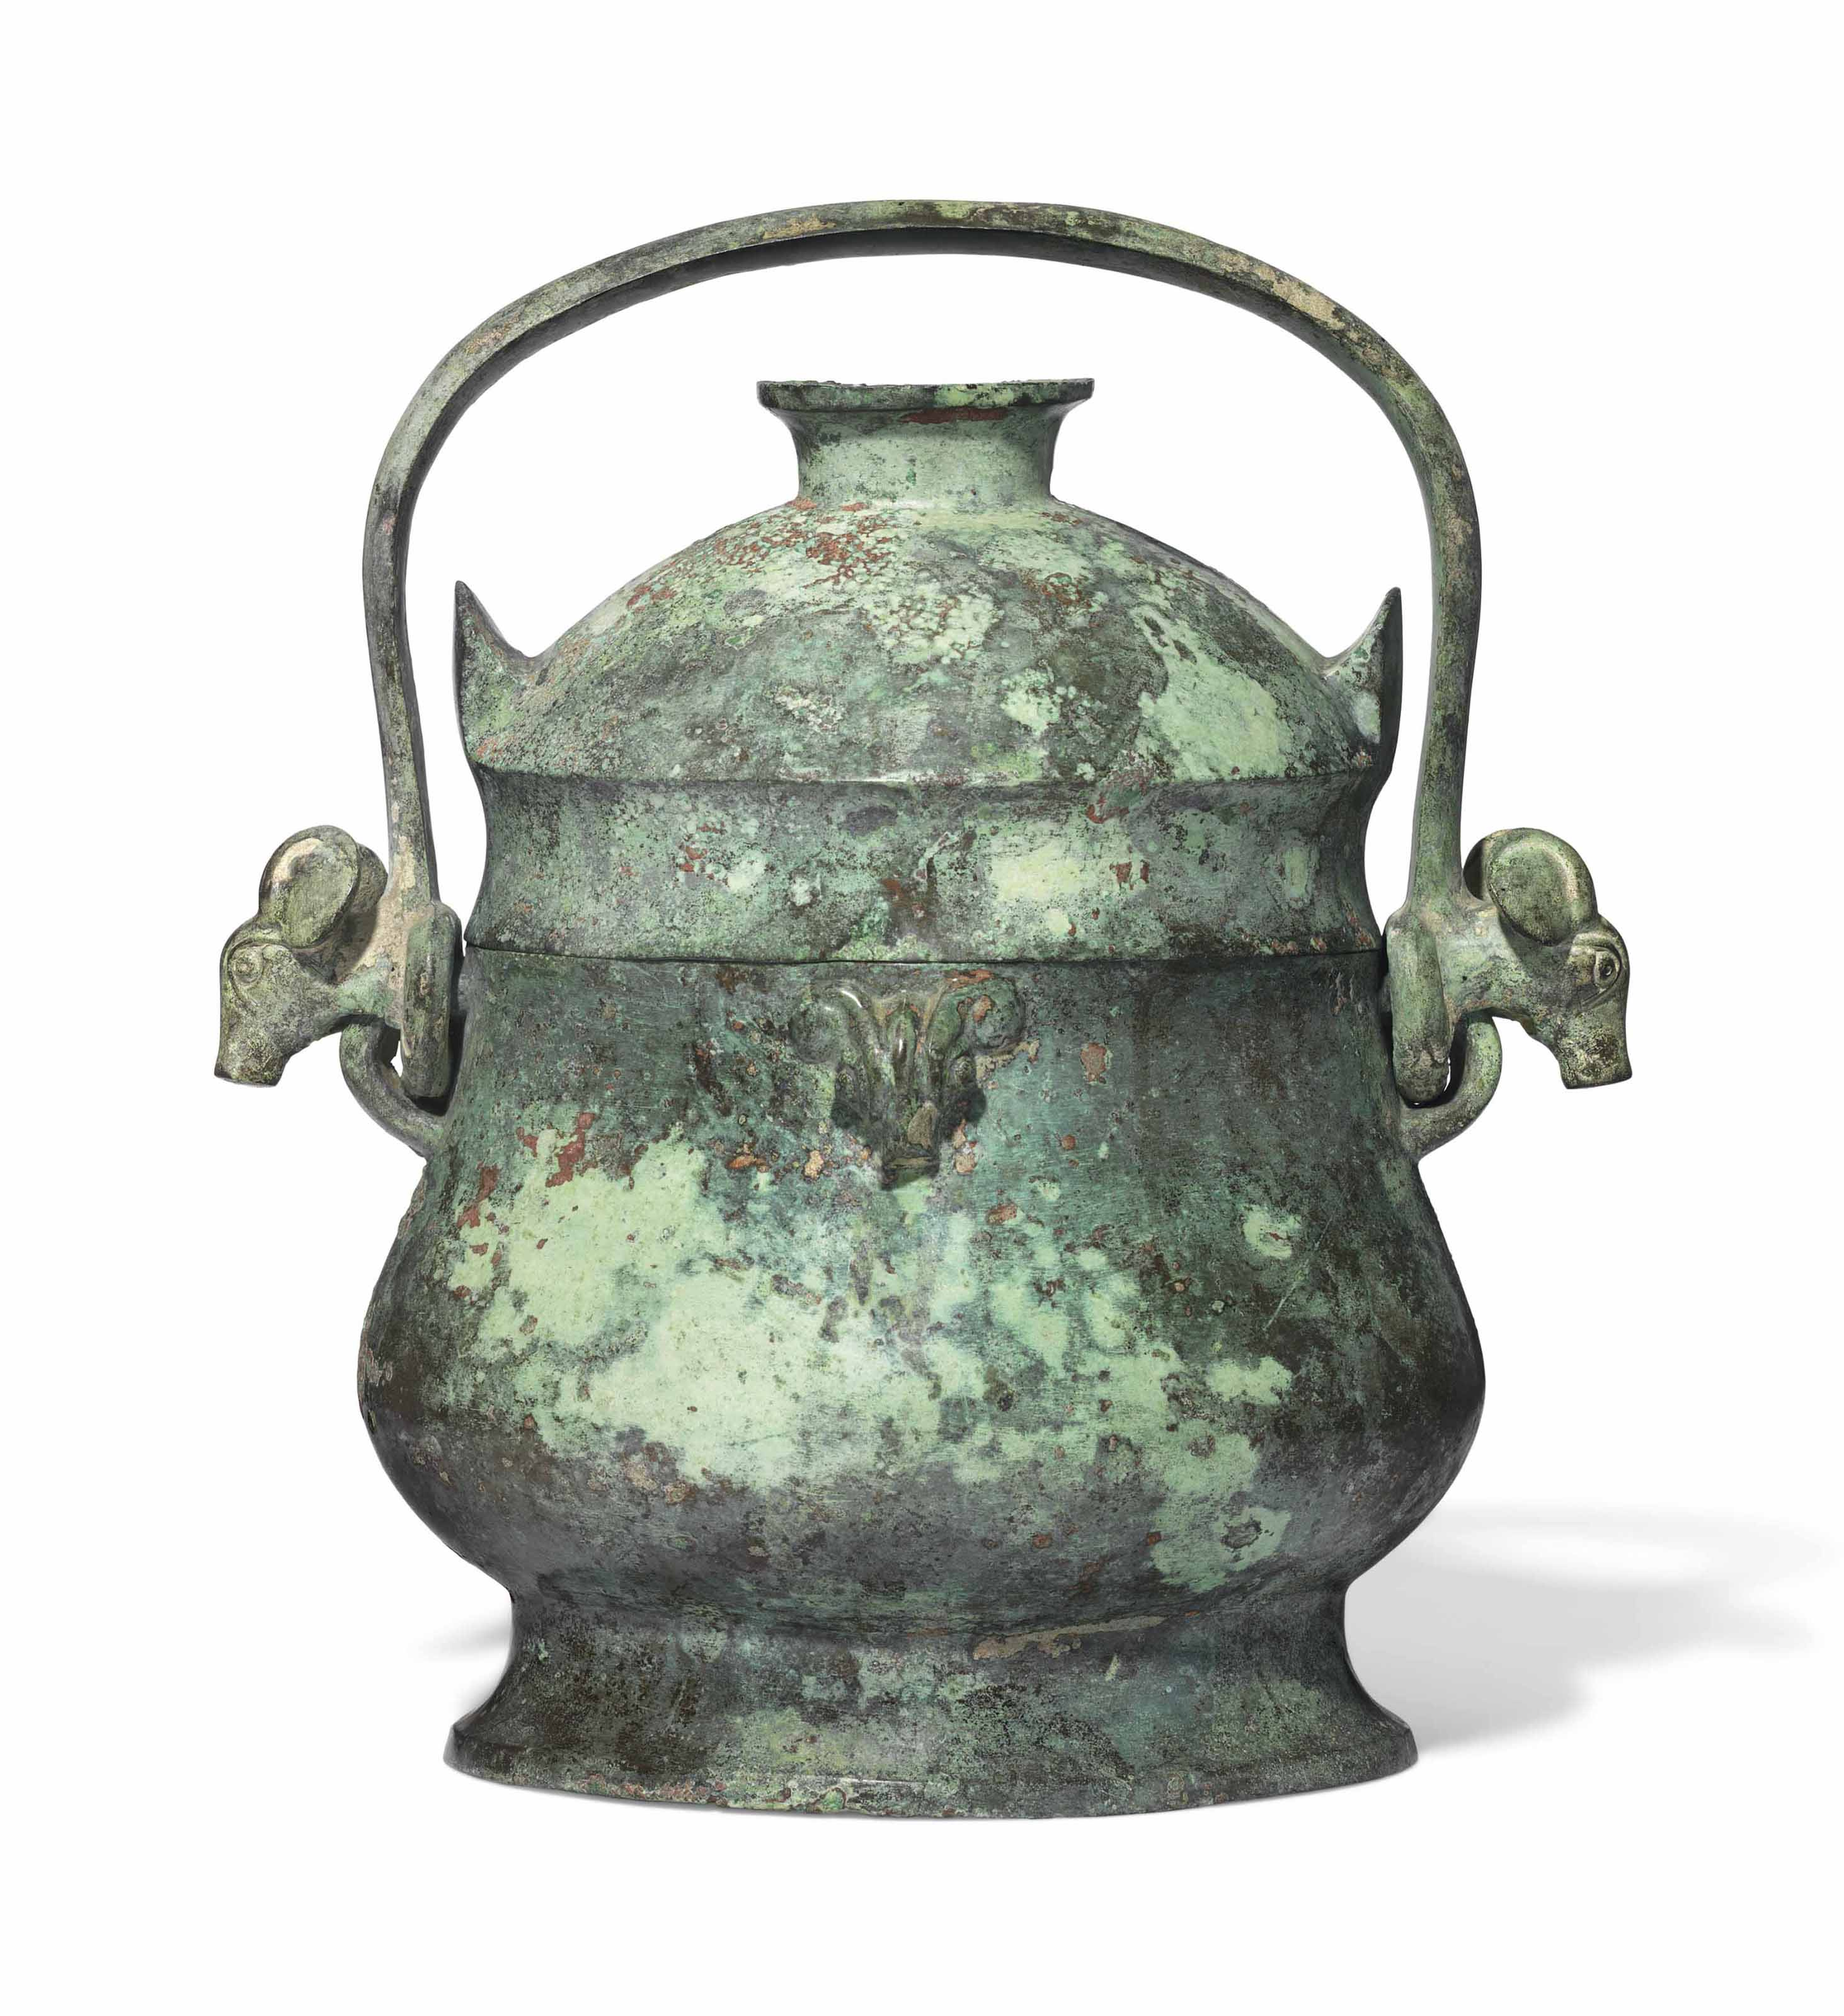 A bronze ritual wine vessel and cover, You, early Western Zhou dynasty (11th-10th century BC). 11  in (28  cm) high. Estimate £80,000-120,000. This lot is offered in Fine Chinese Ceramics & Works of Art on 7 November 2017  at Christie's in London